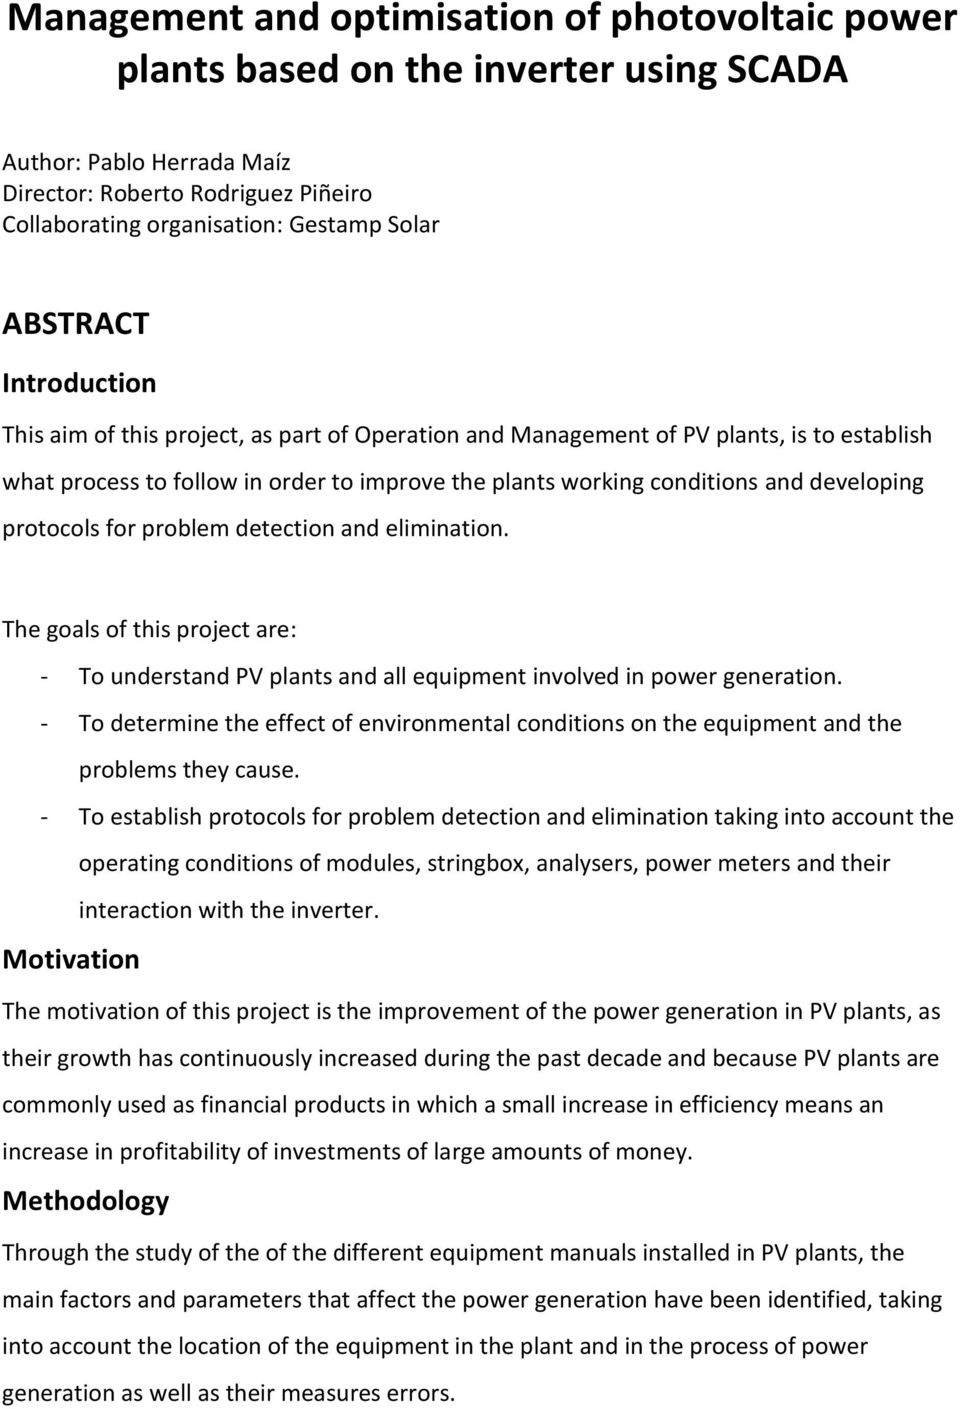 developing protocols for problem detection and elimination. The goals of this project are: - To understand PV plants and all equipment involved in power generation.